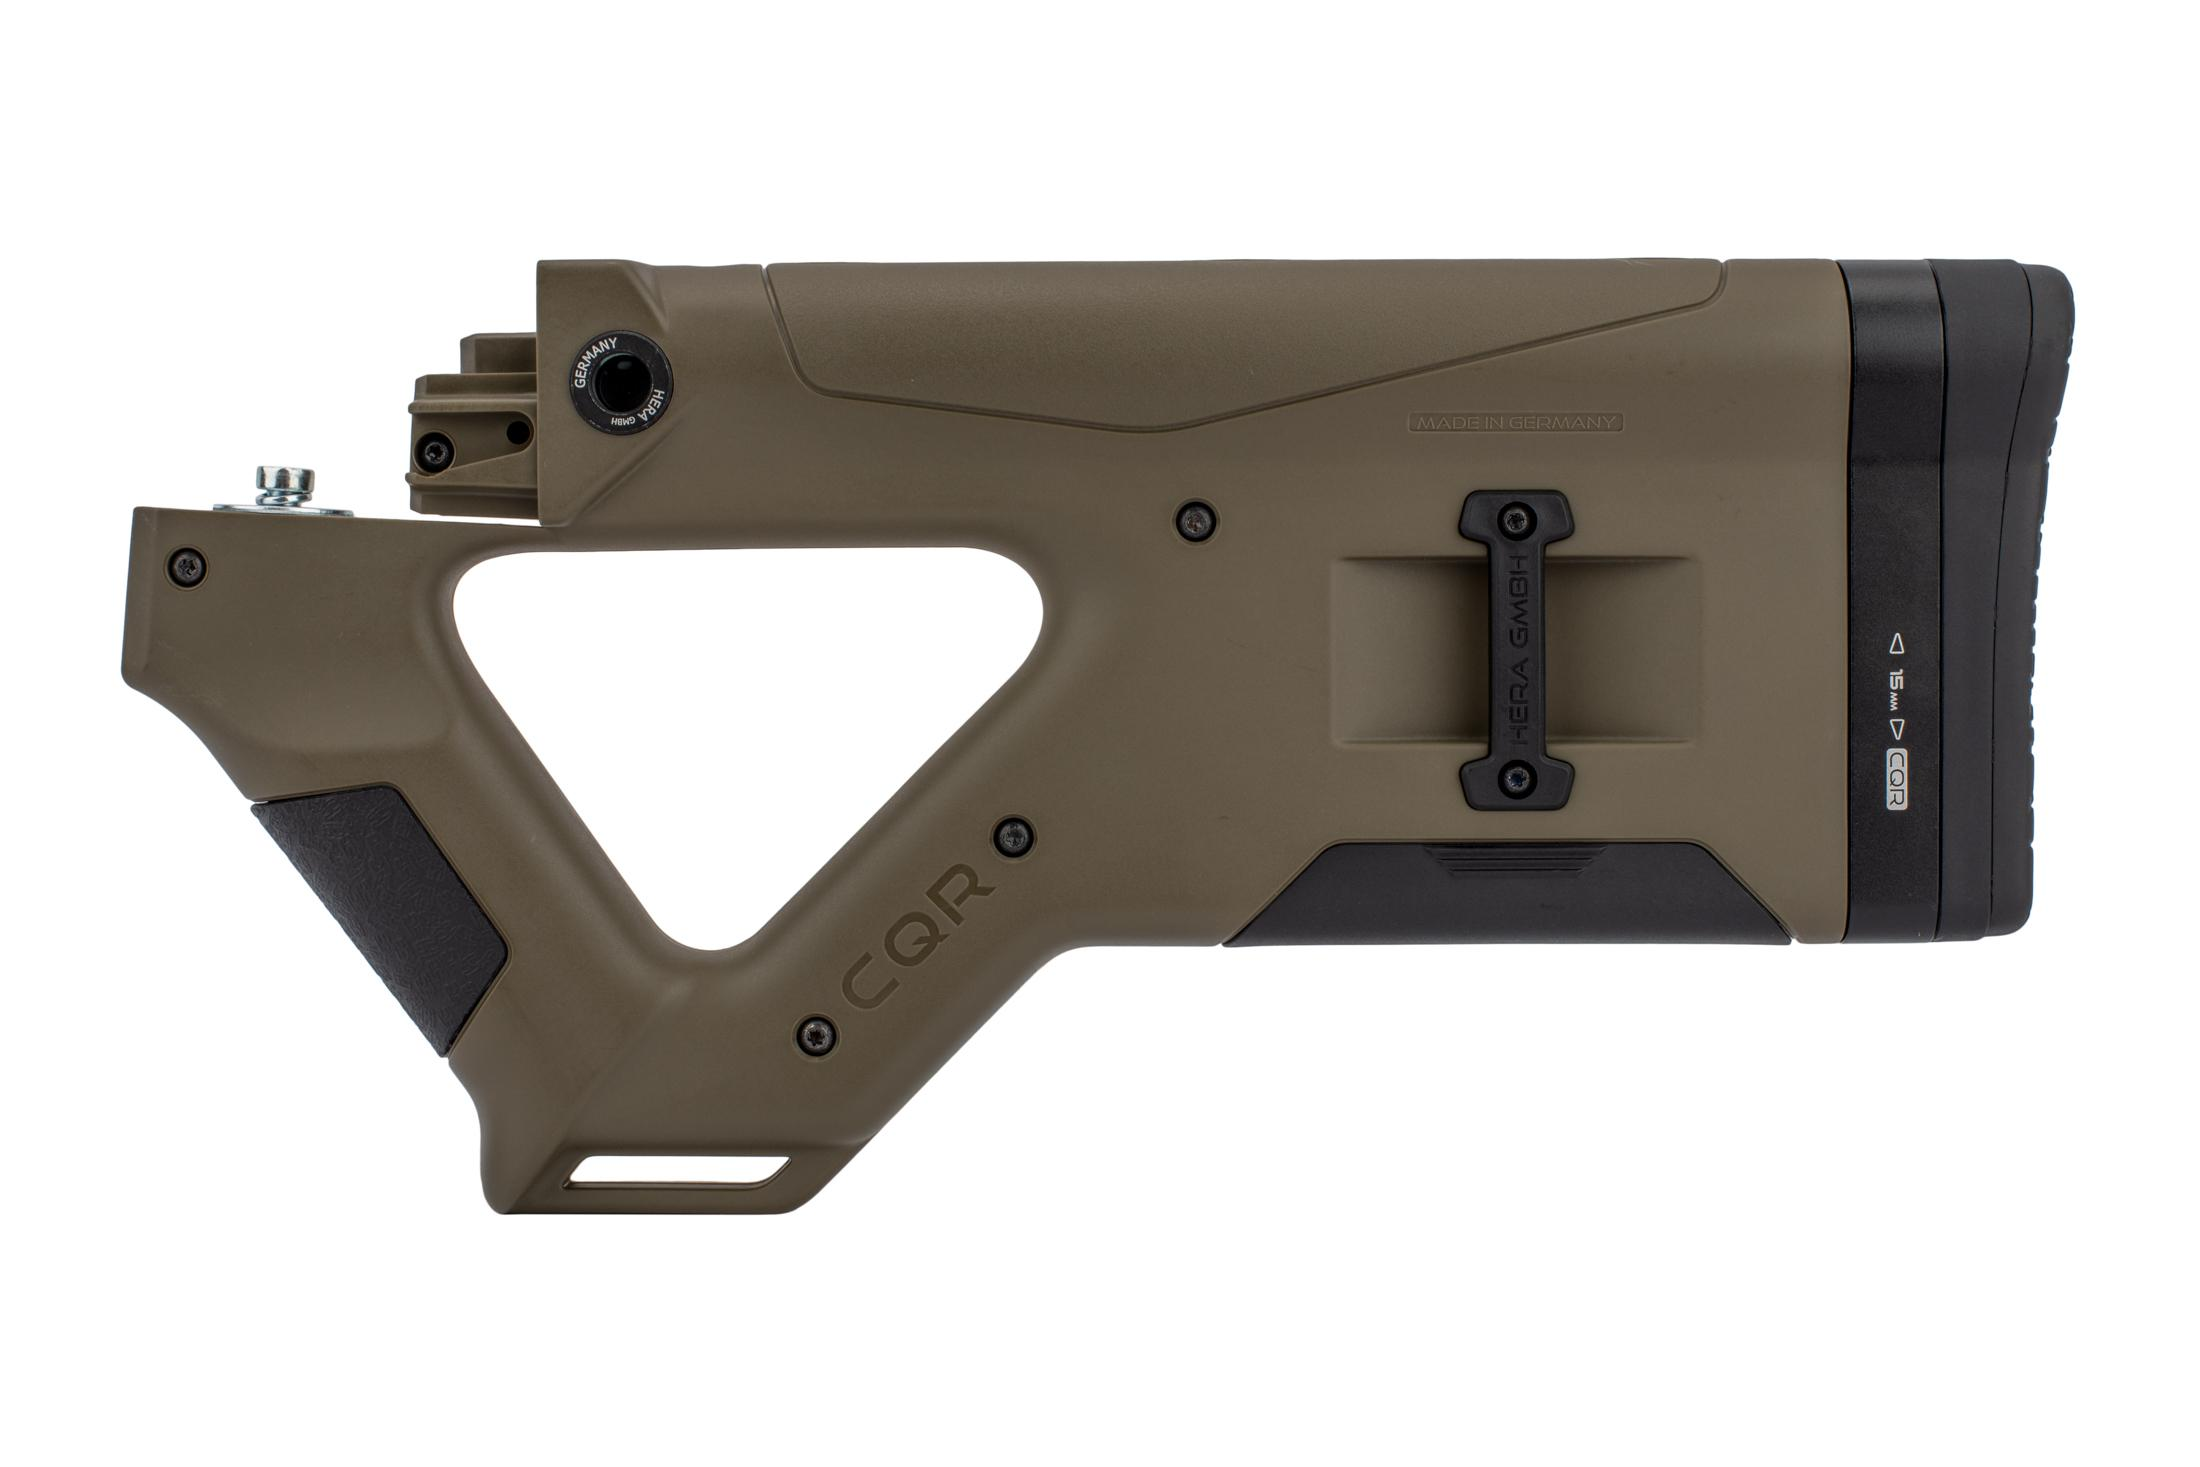 The Hera Arms CQR AK47 stock features a compact design with multiple features